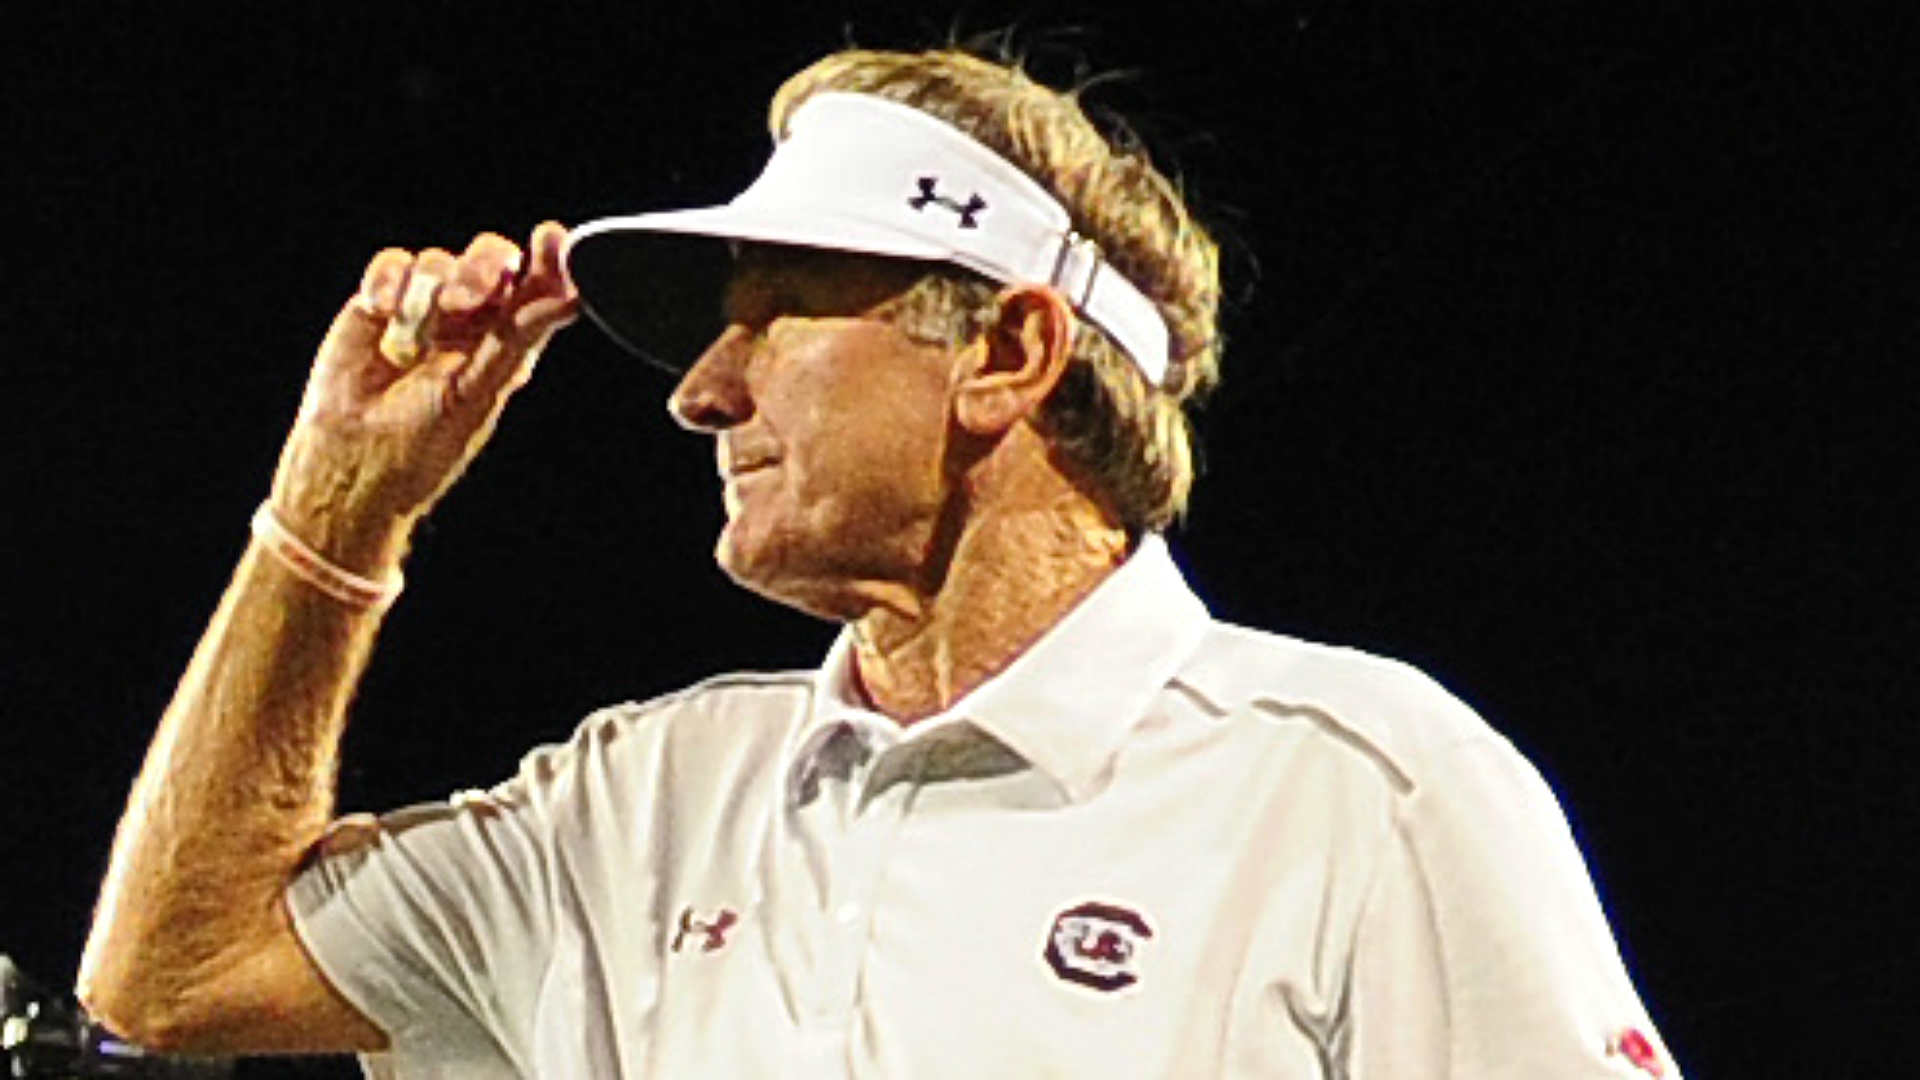 Steve-Spurrier-101215-USnews-Getty-FTR